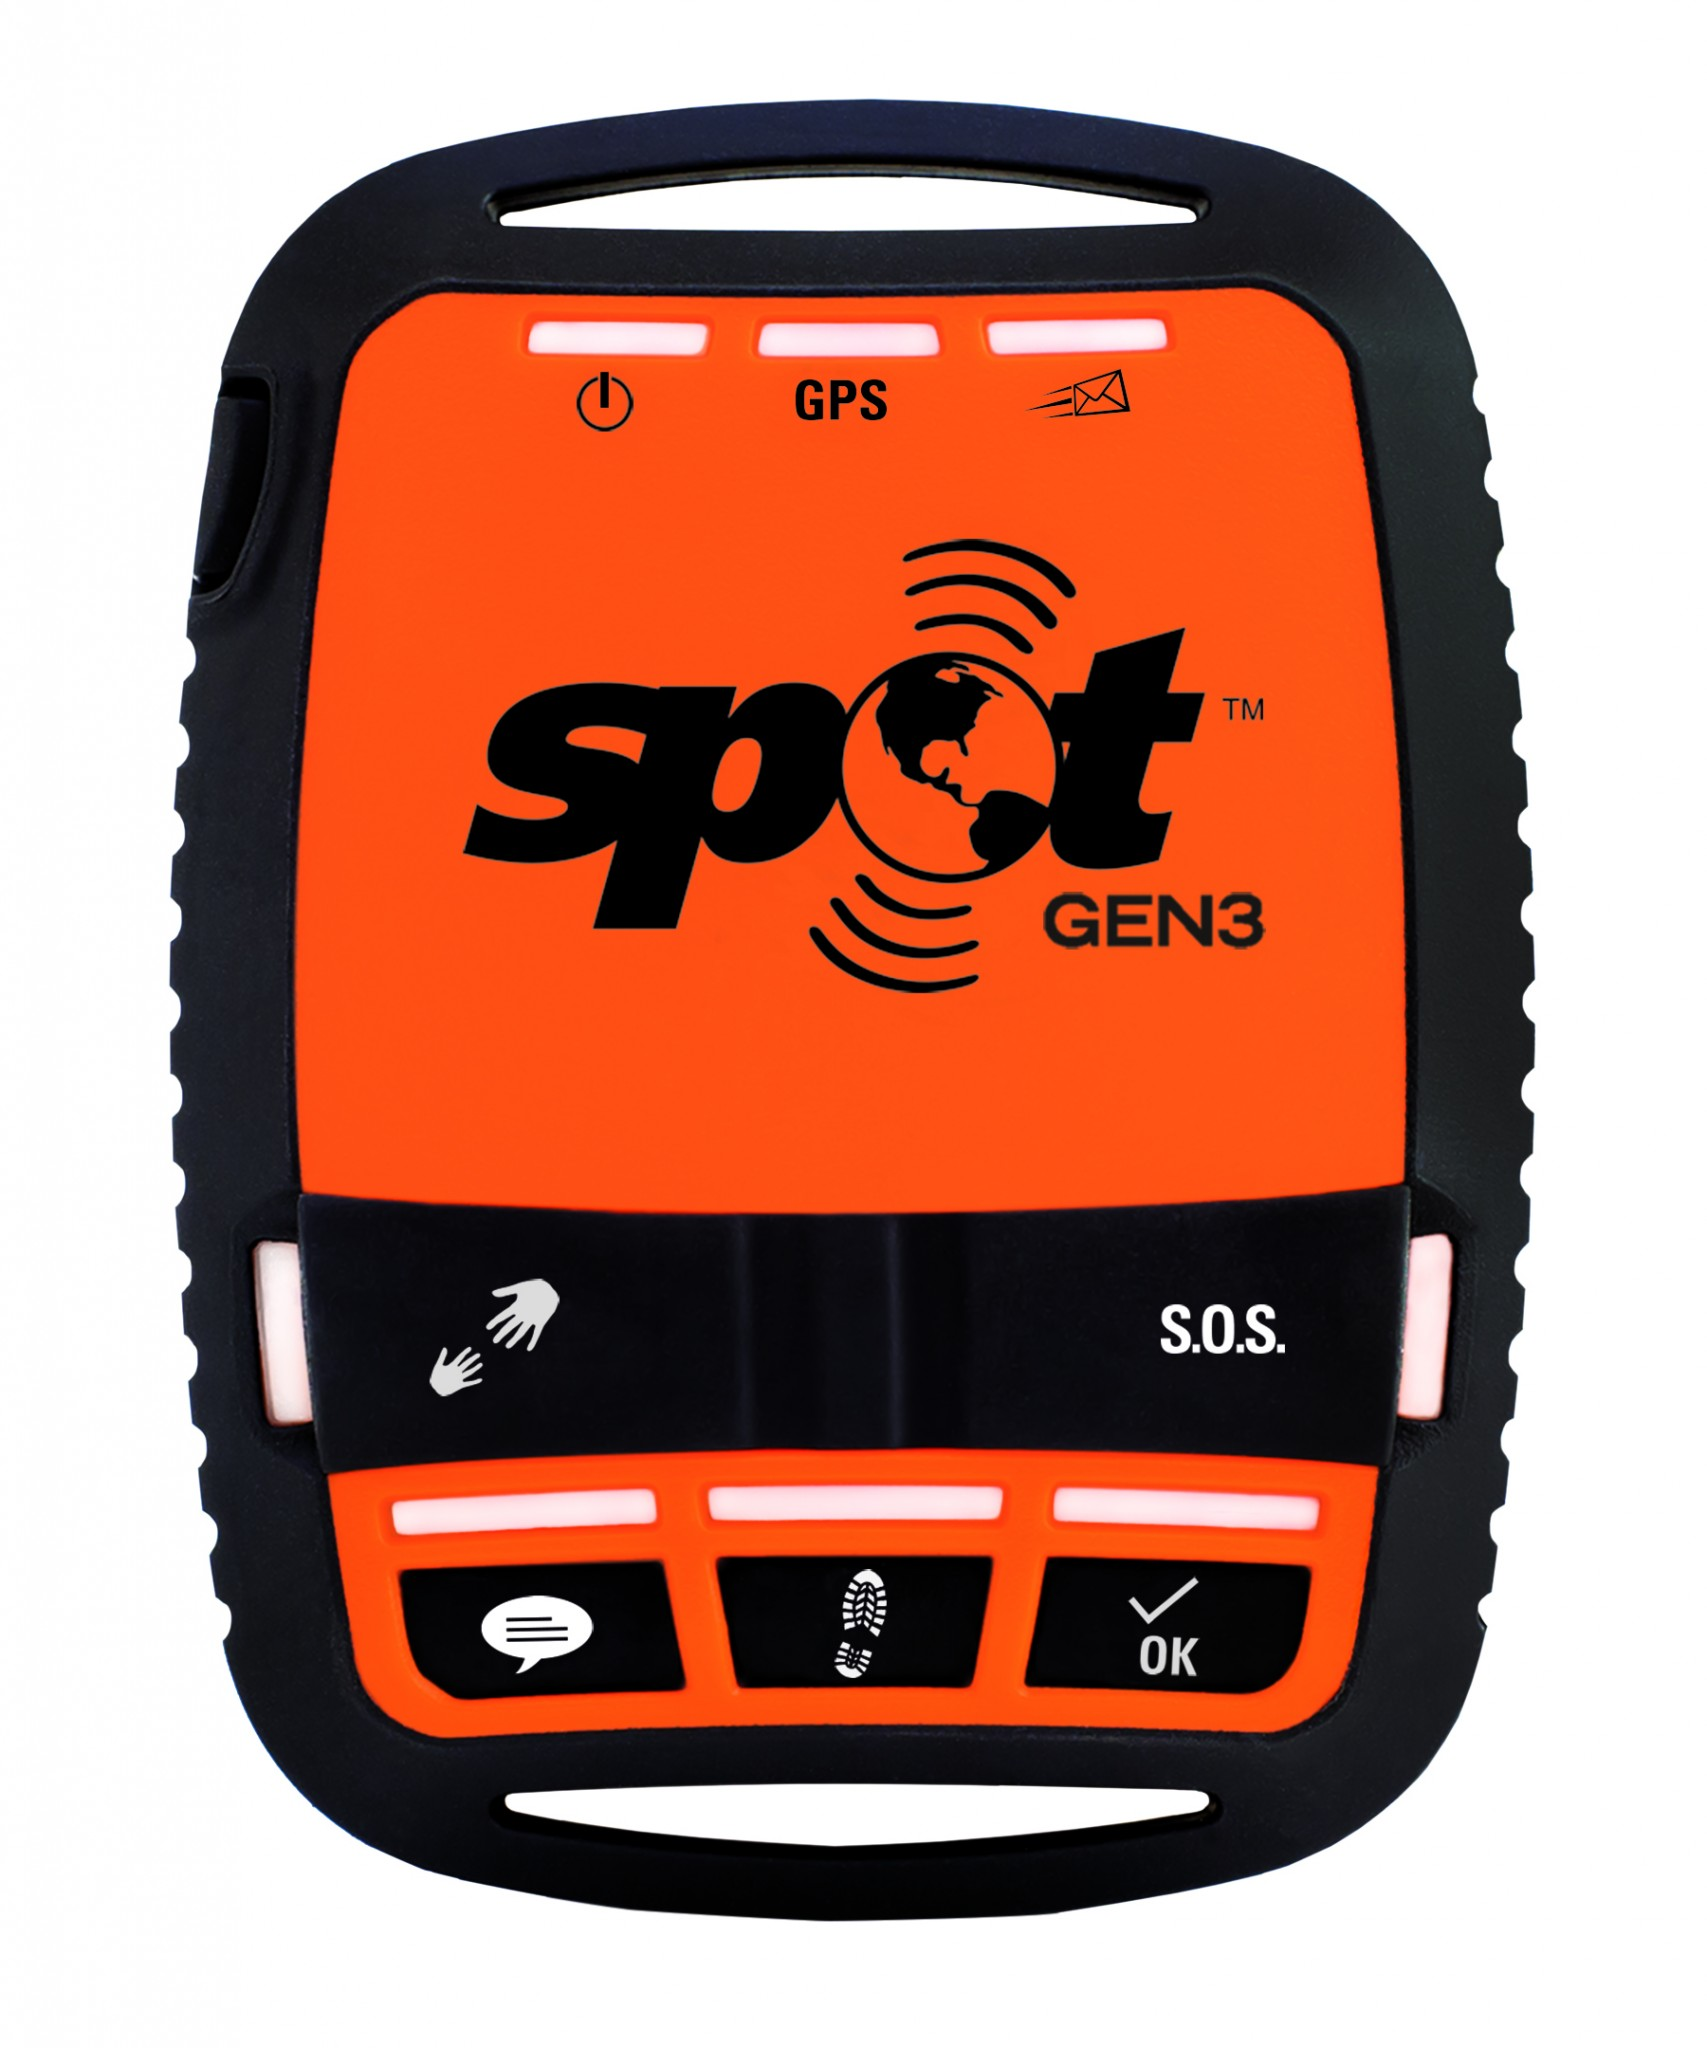 Product News: SPOT Gen3